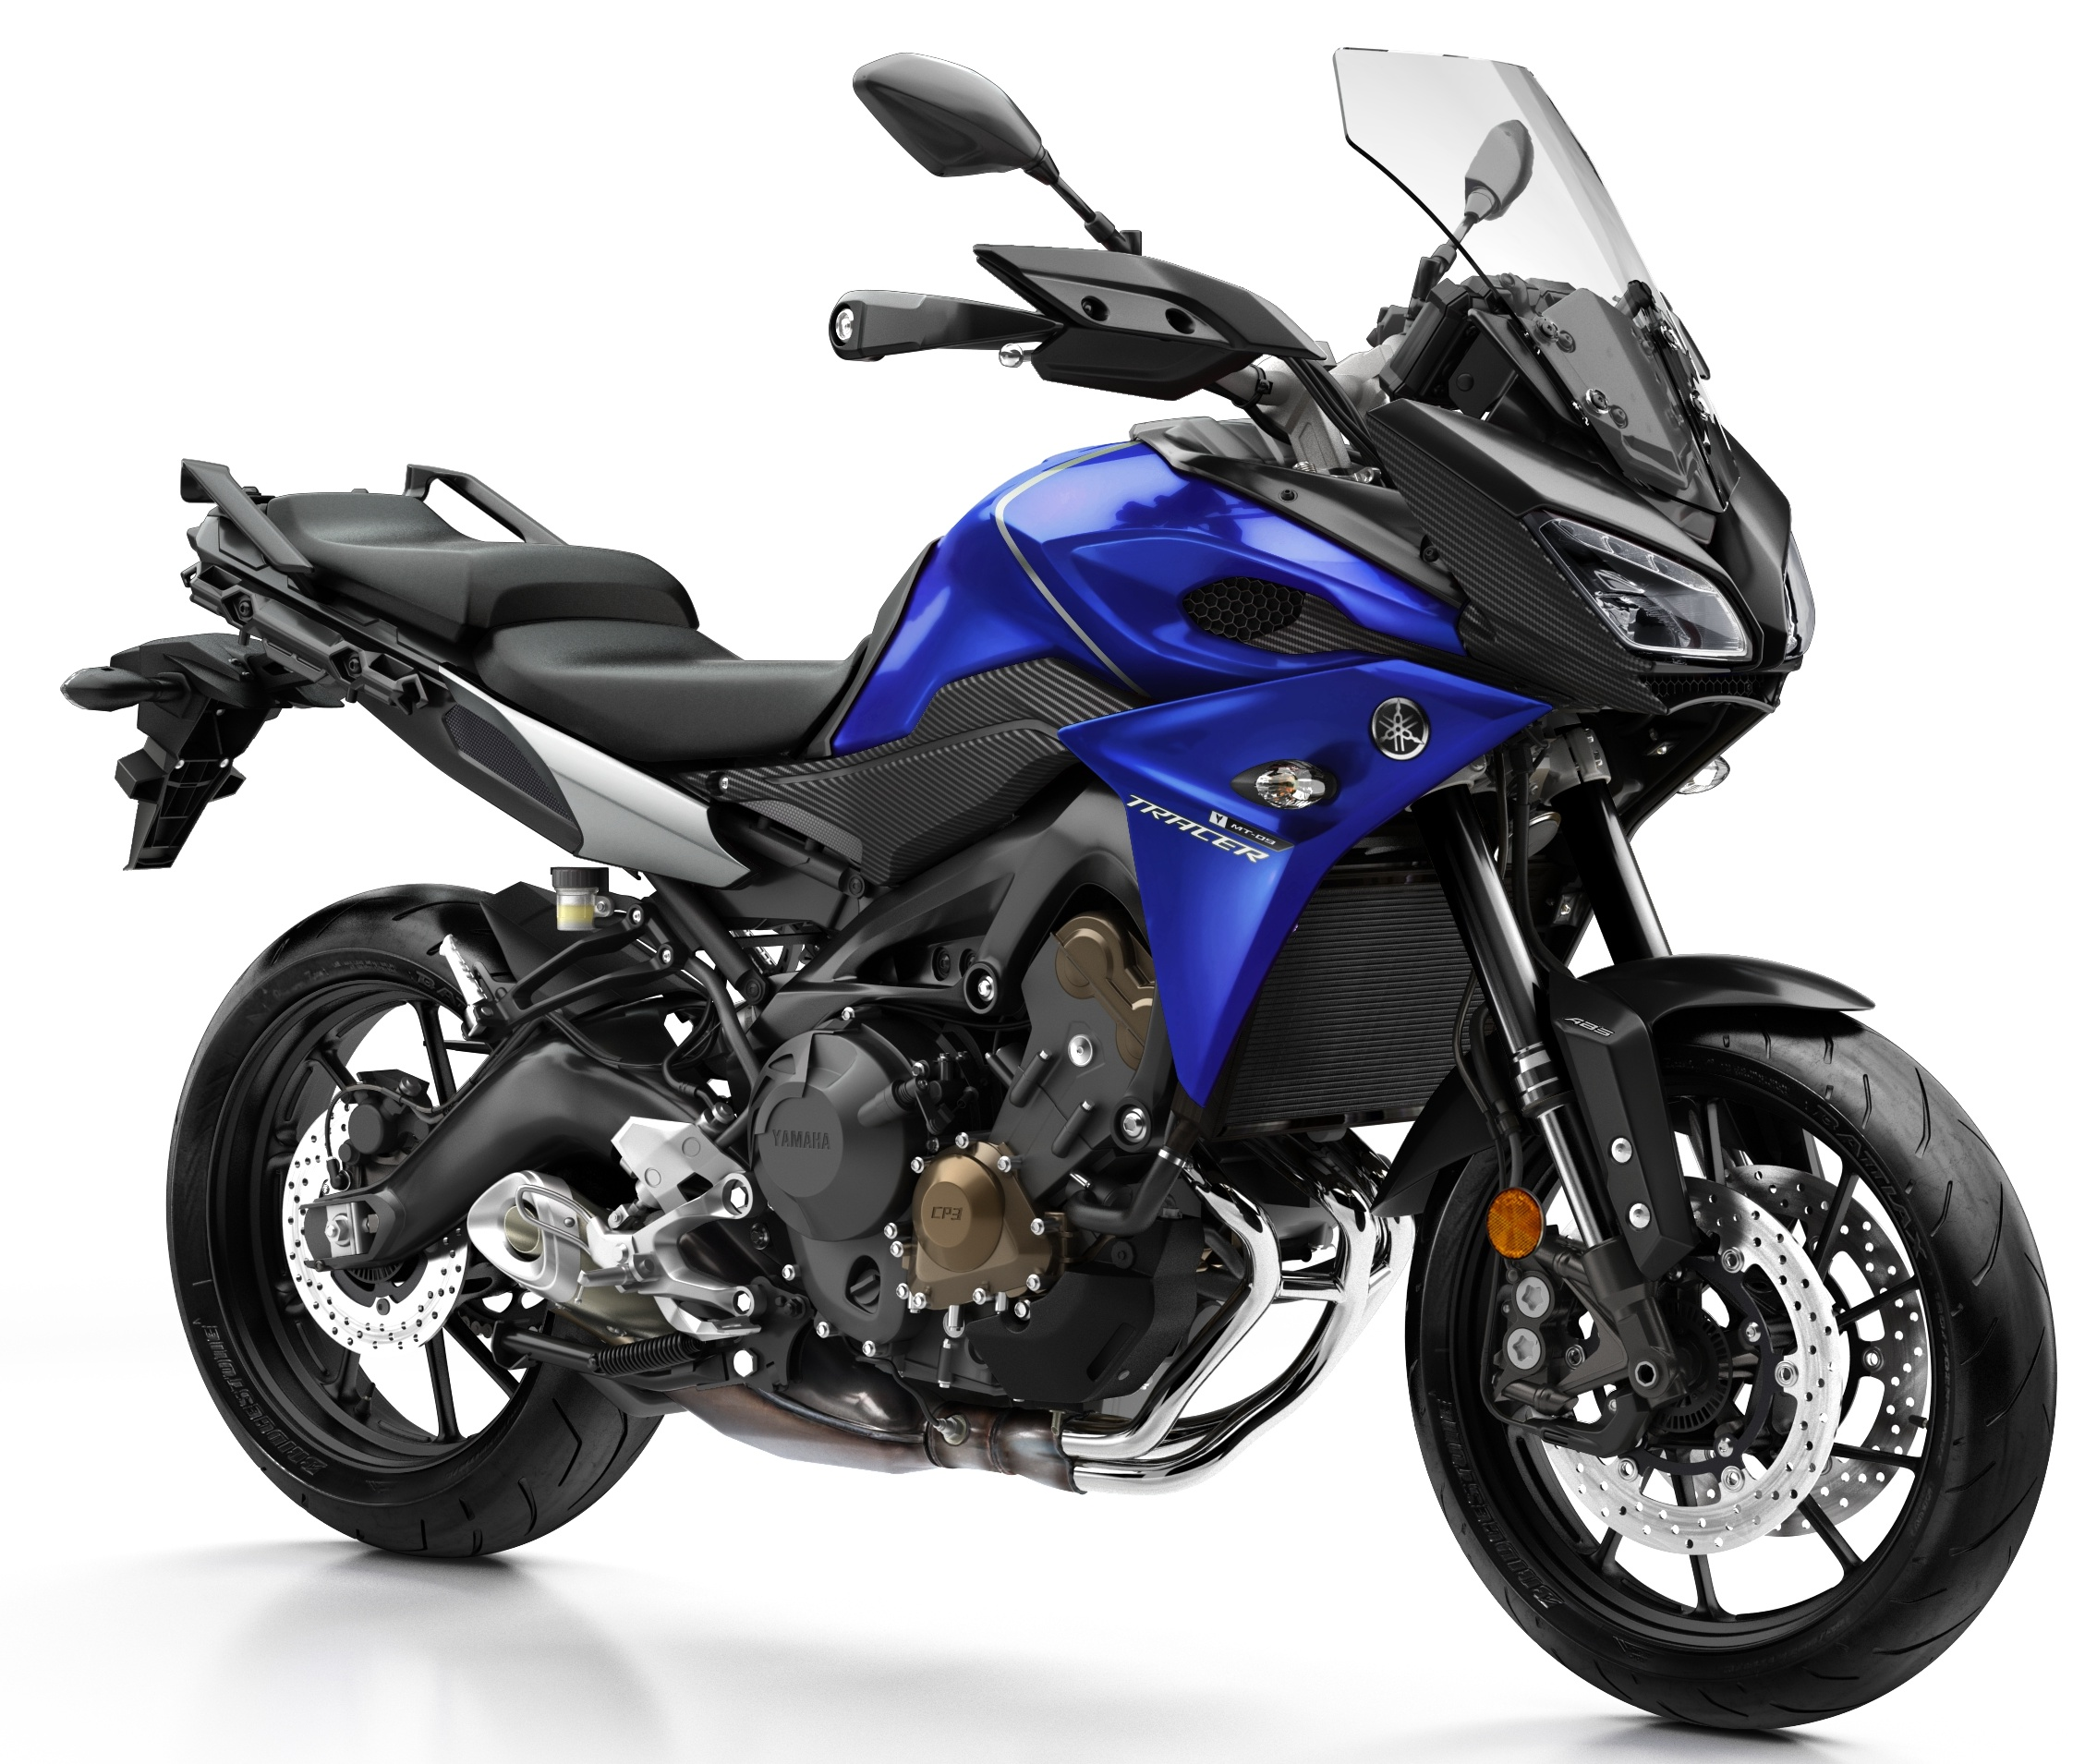 2017 yamaha motorcycles get new colour schemes image 556094